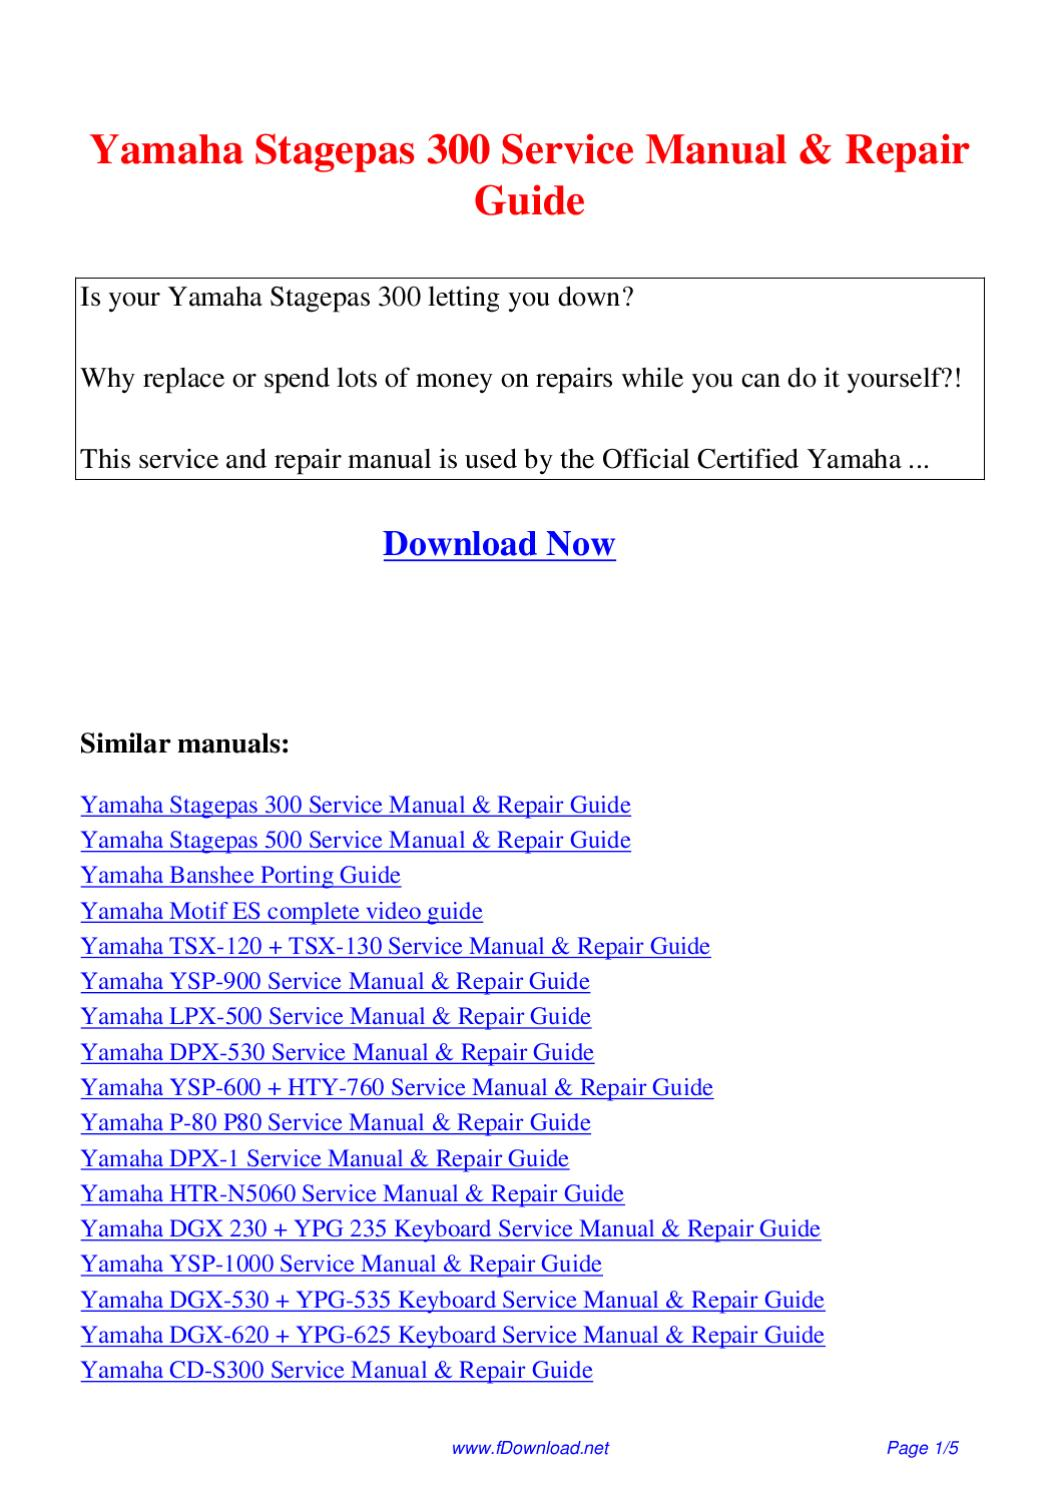 yamaha stagepas 500 service manual